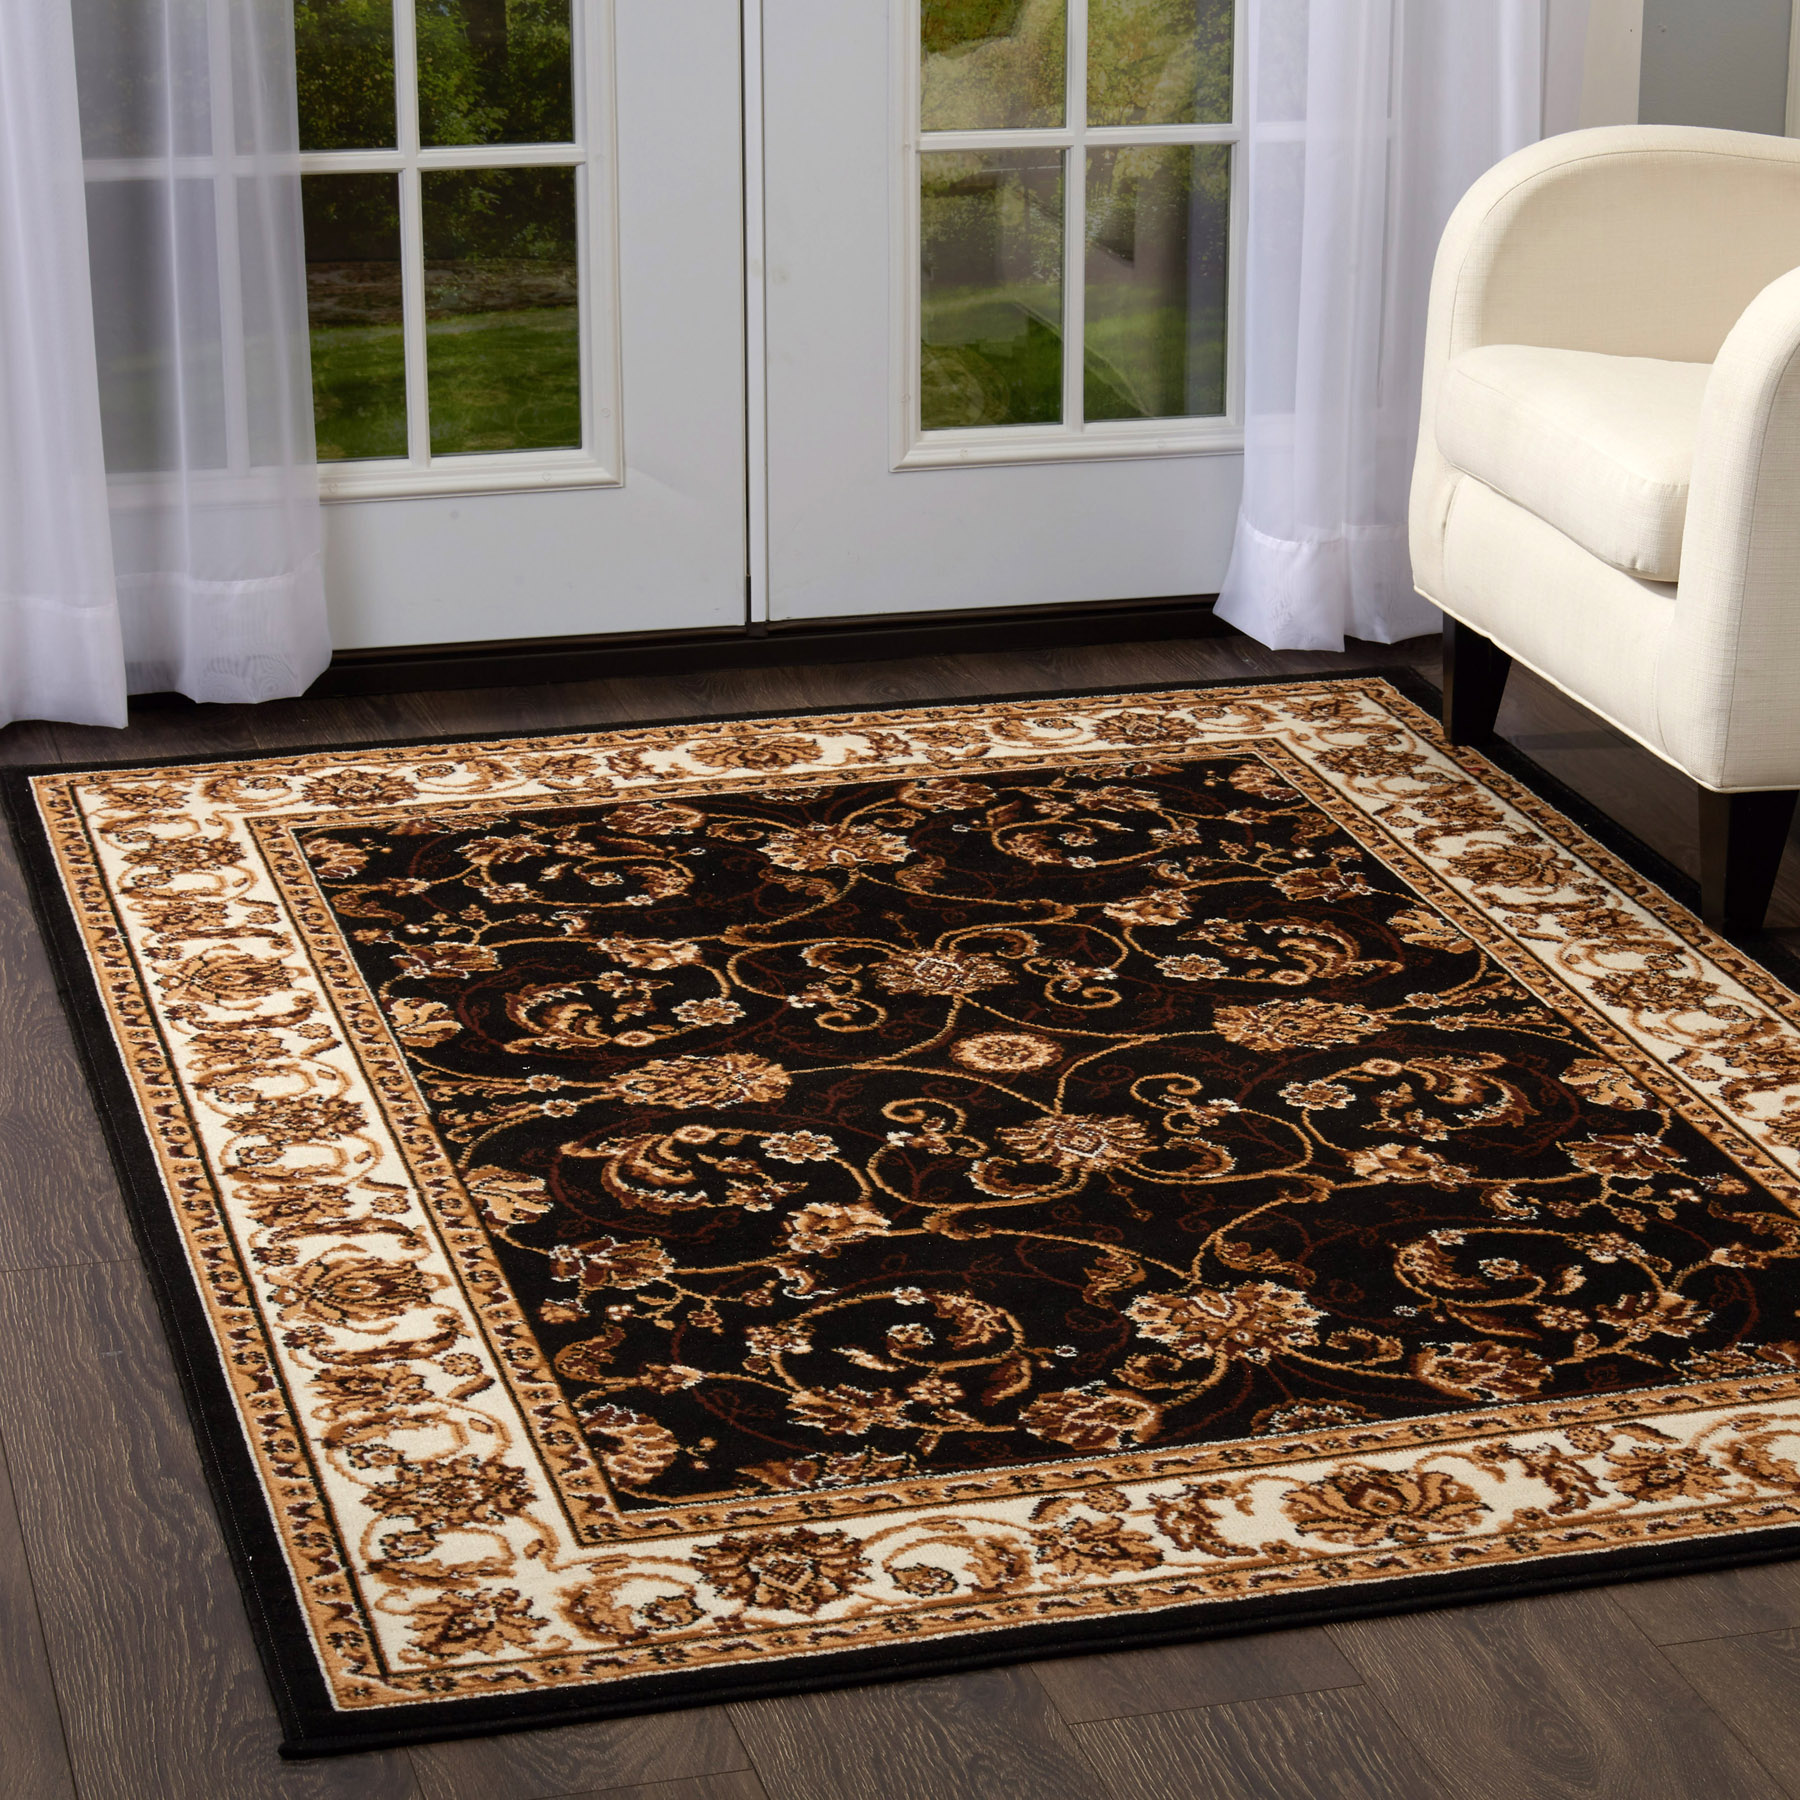 Rugs Area Rugs Carpet Flooring Persian Area Rug Brown